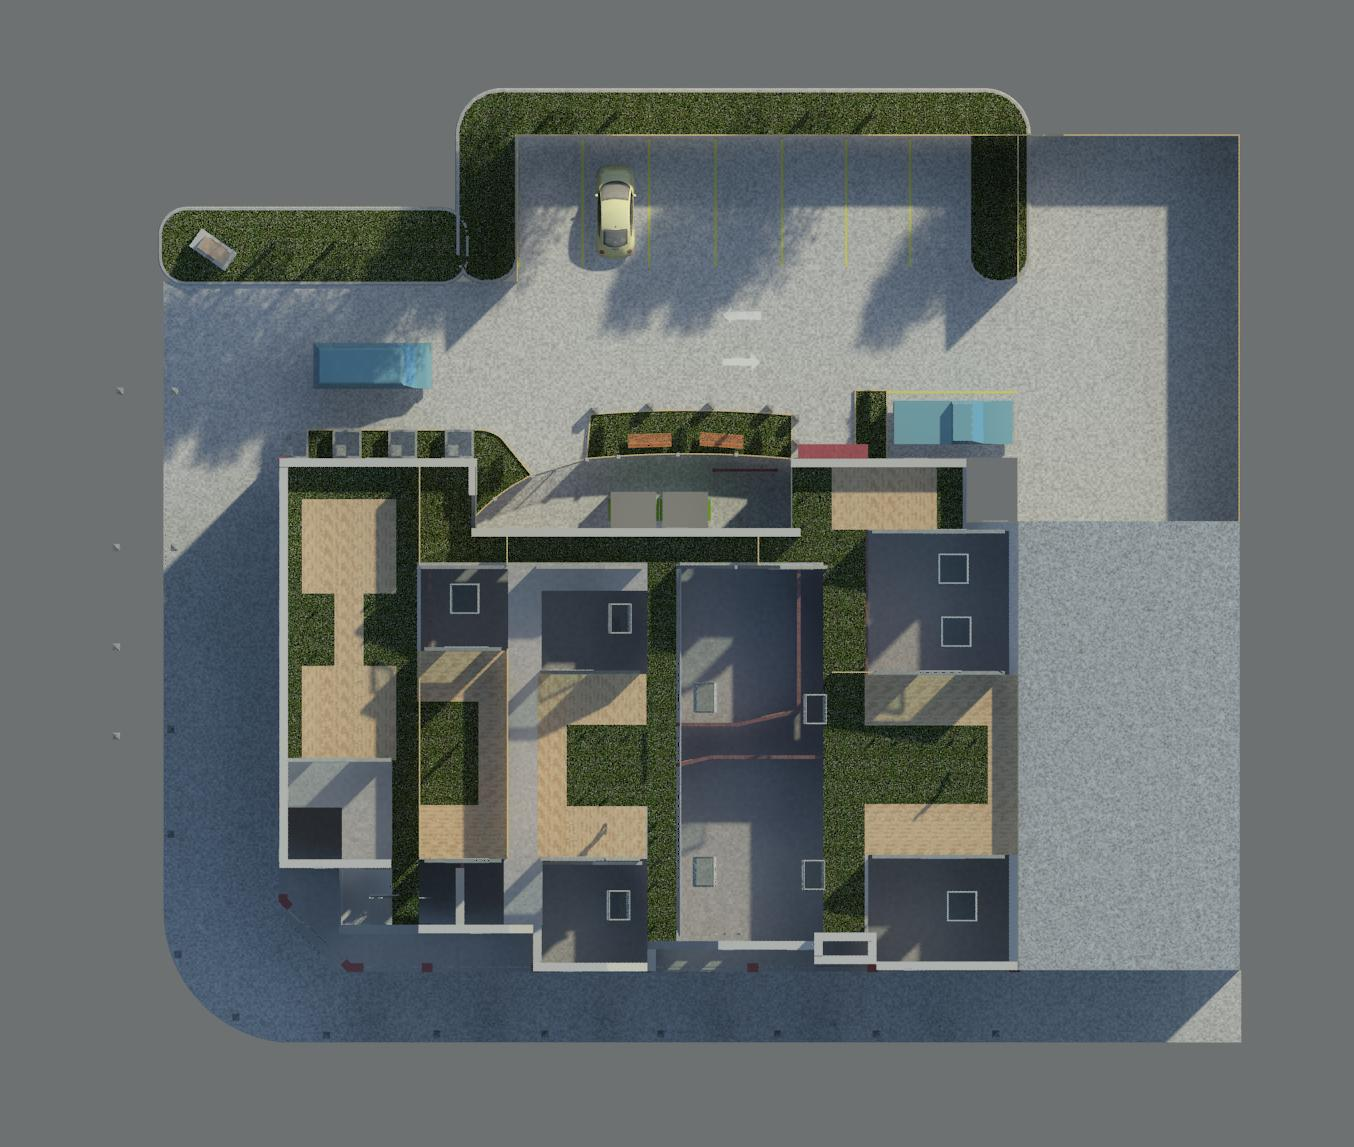 Lakeshore Commercial Space with 2nd Floor Residential Apartments Green Roof.jpg